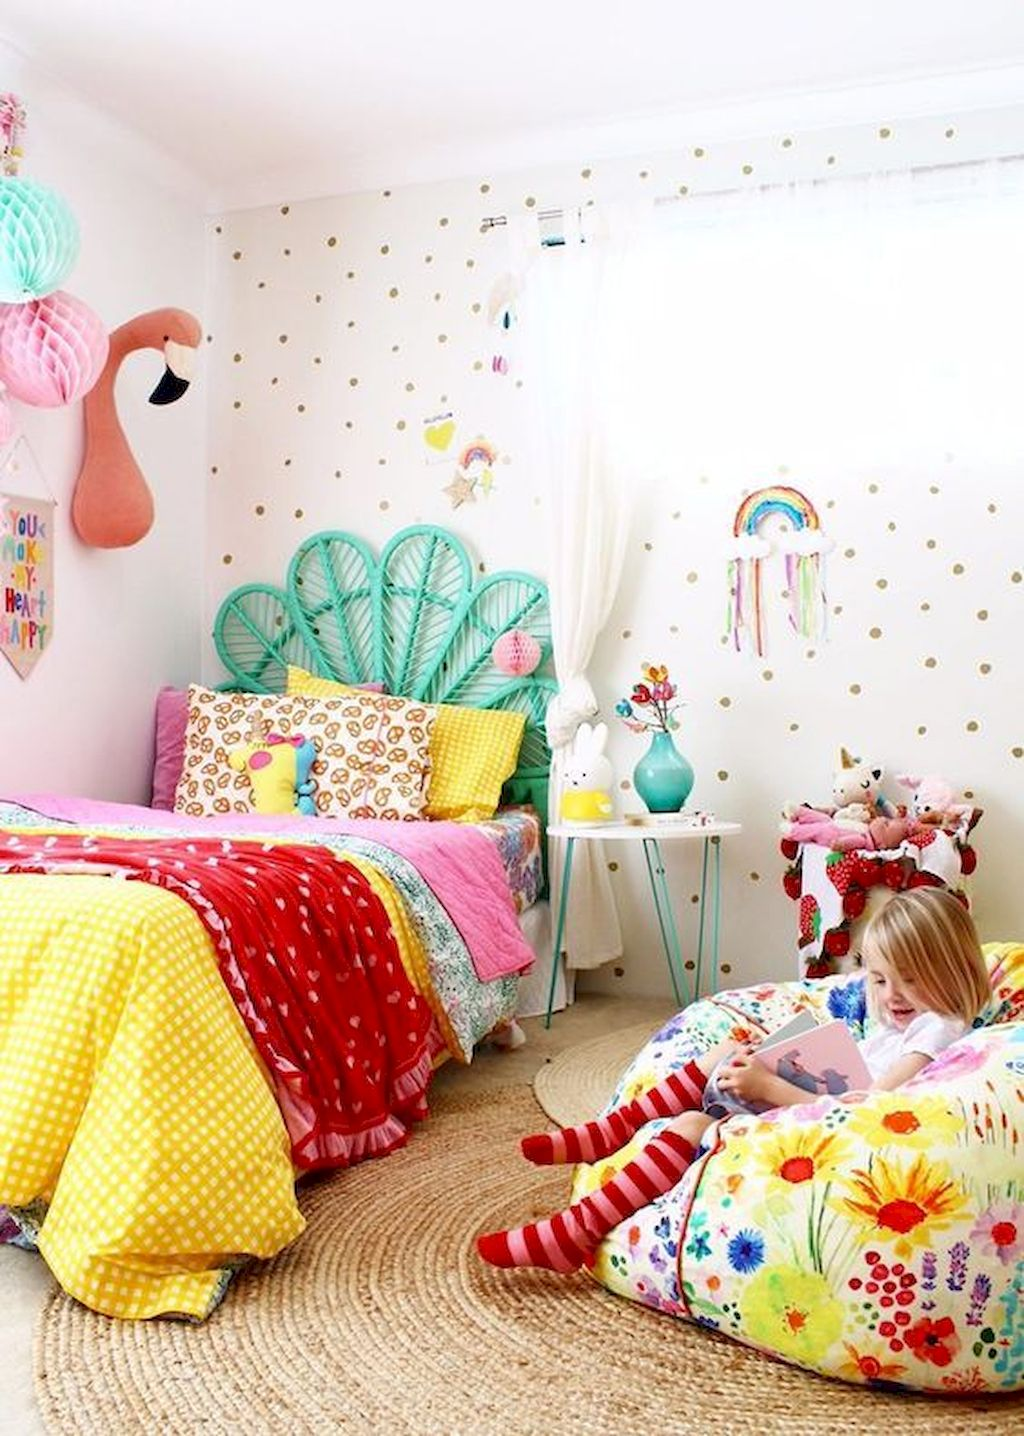 Children Bedroom003